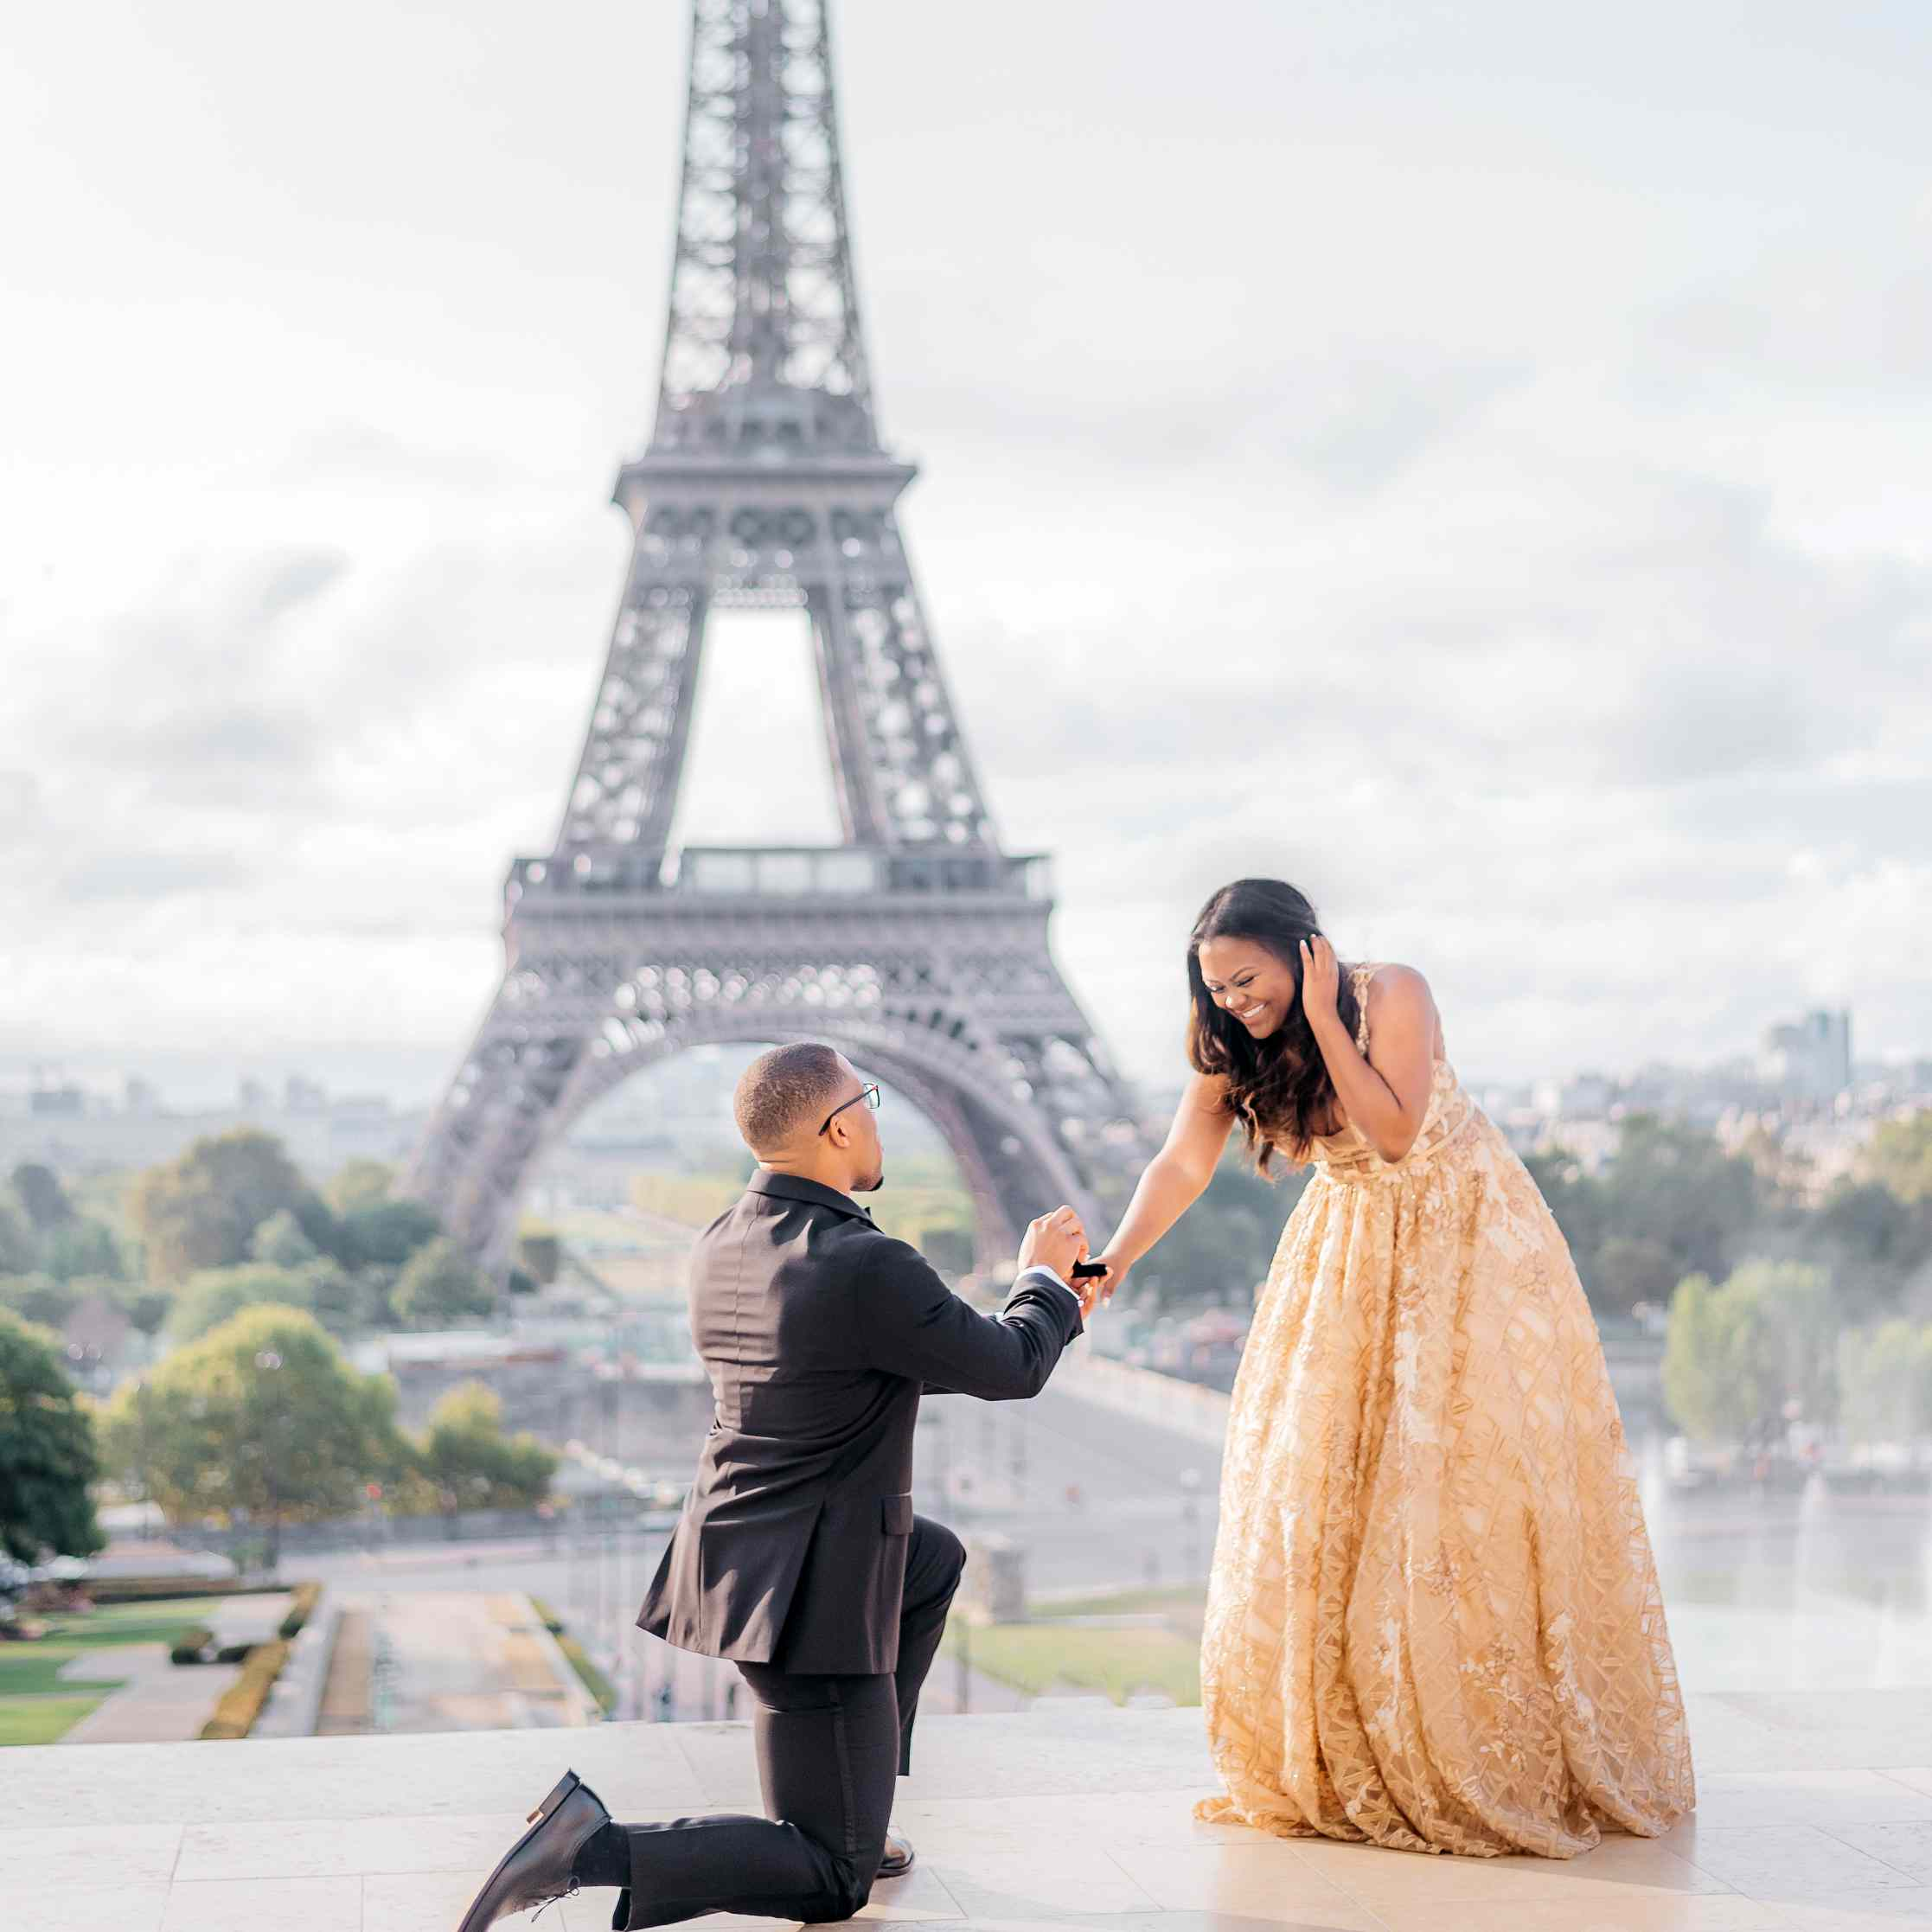 Proposal Goals Alert! These 37 Proposal Photos Are Crazy-Epic